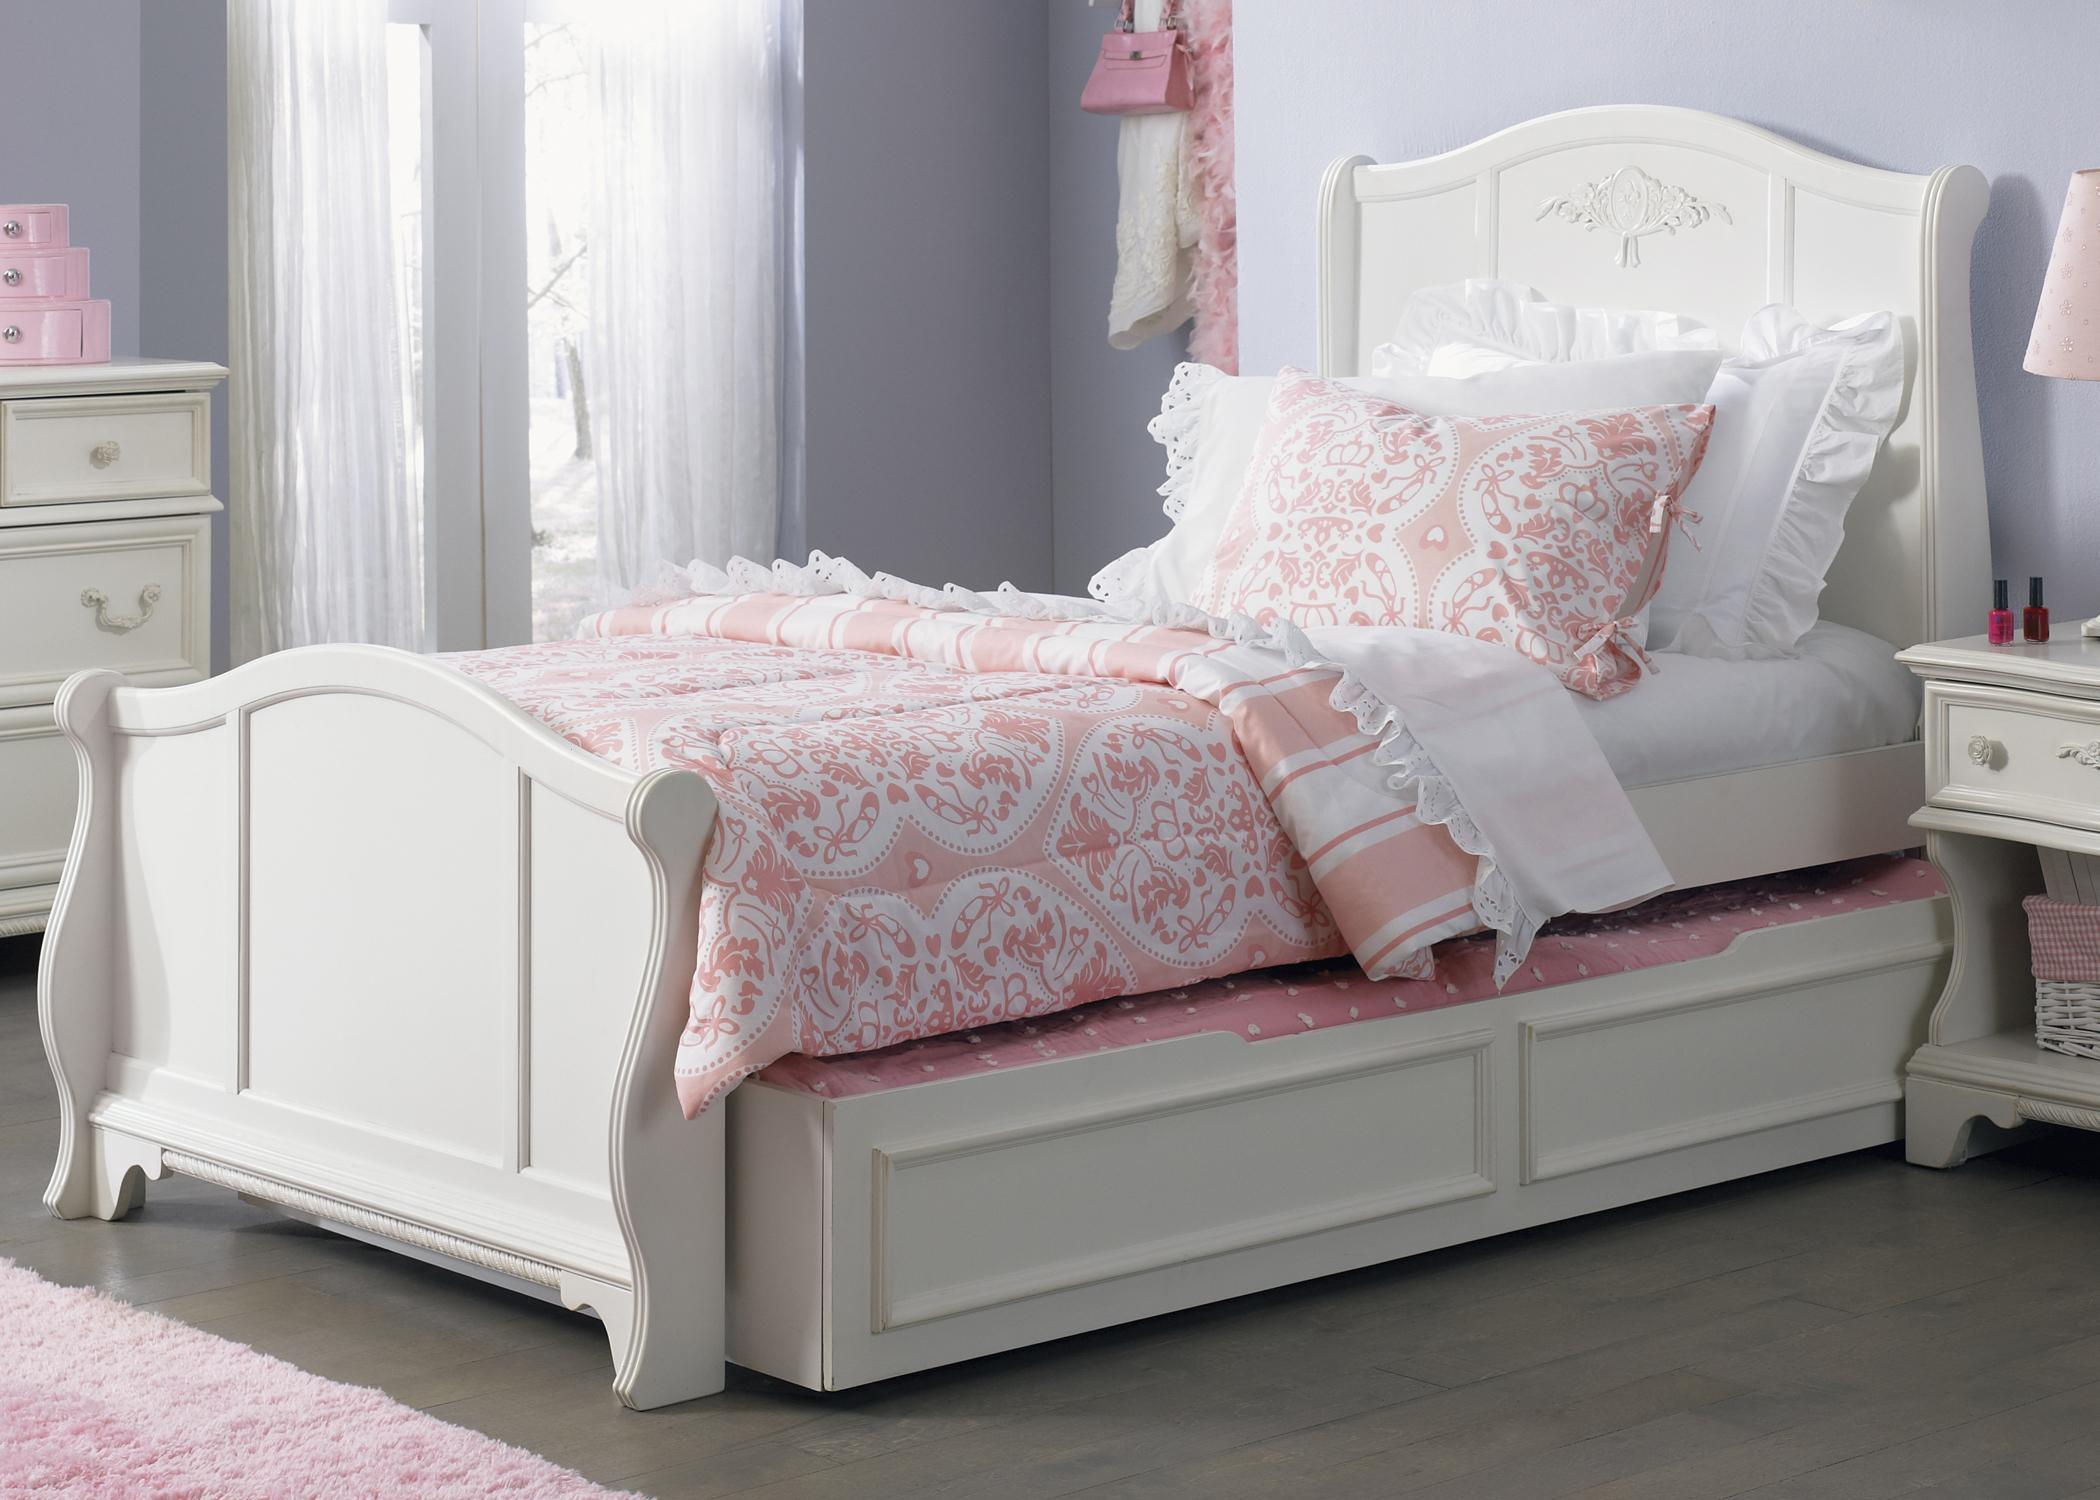 Arielle Youth Bedroom Full Sleigh Bed with Trundle  by Liberty Furniture at Lapeer Furniture & Mattress Center